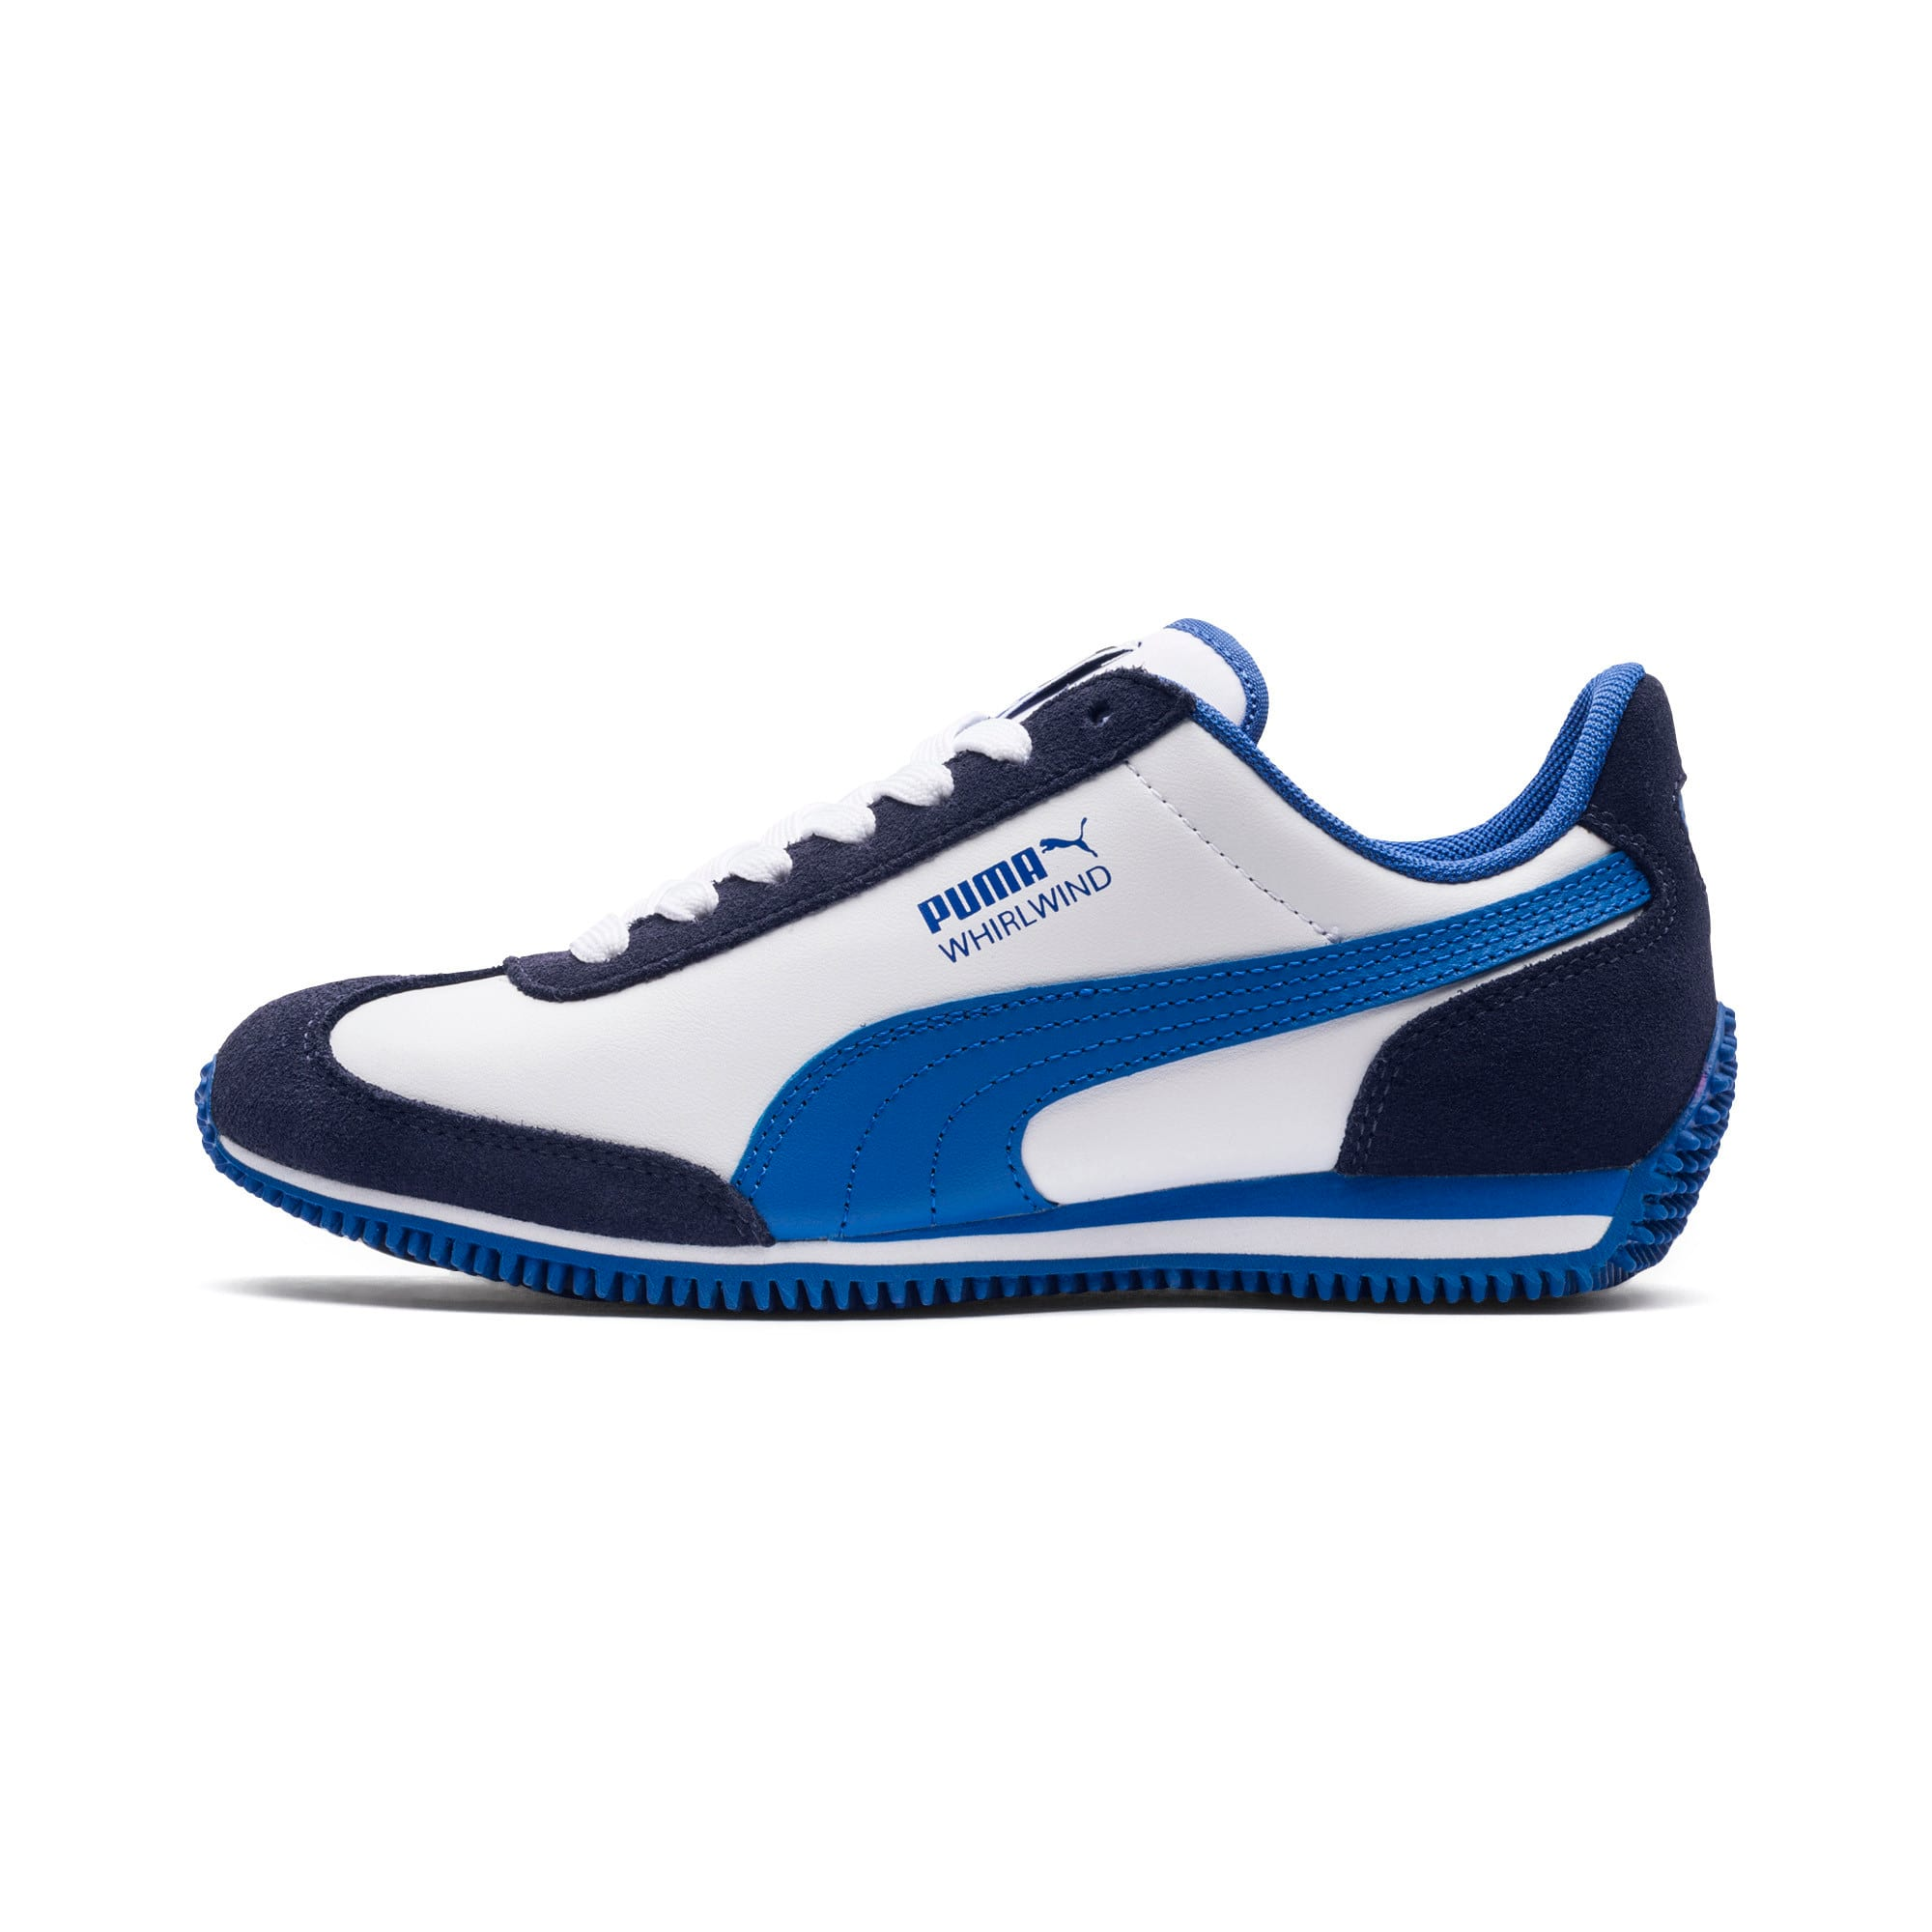 Thumbnail 1 of Kid's Whirlwind Trainers, White-Peacoat-Strong Blue, medium-IND